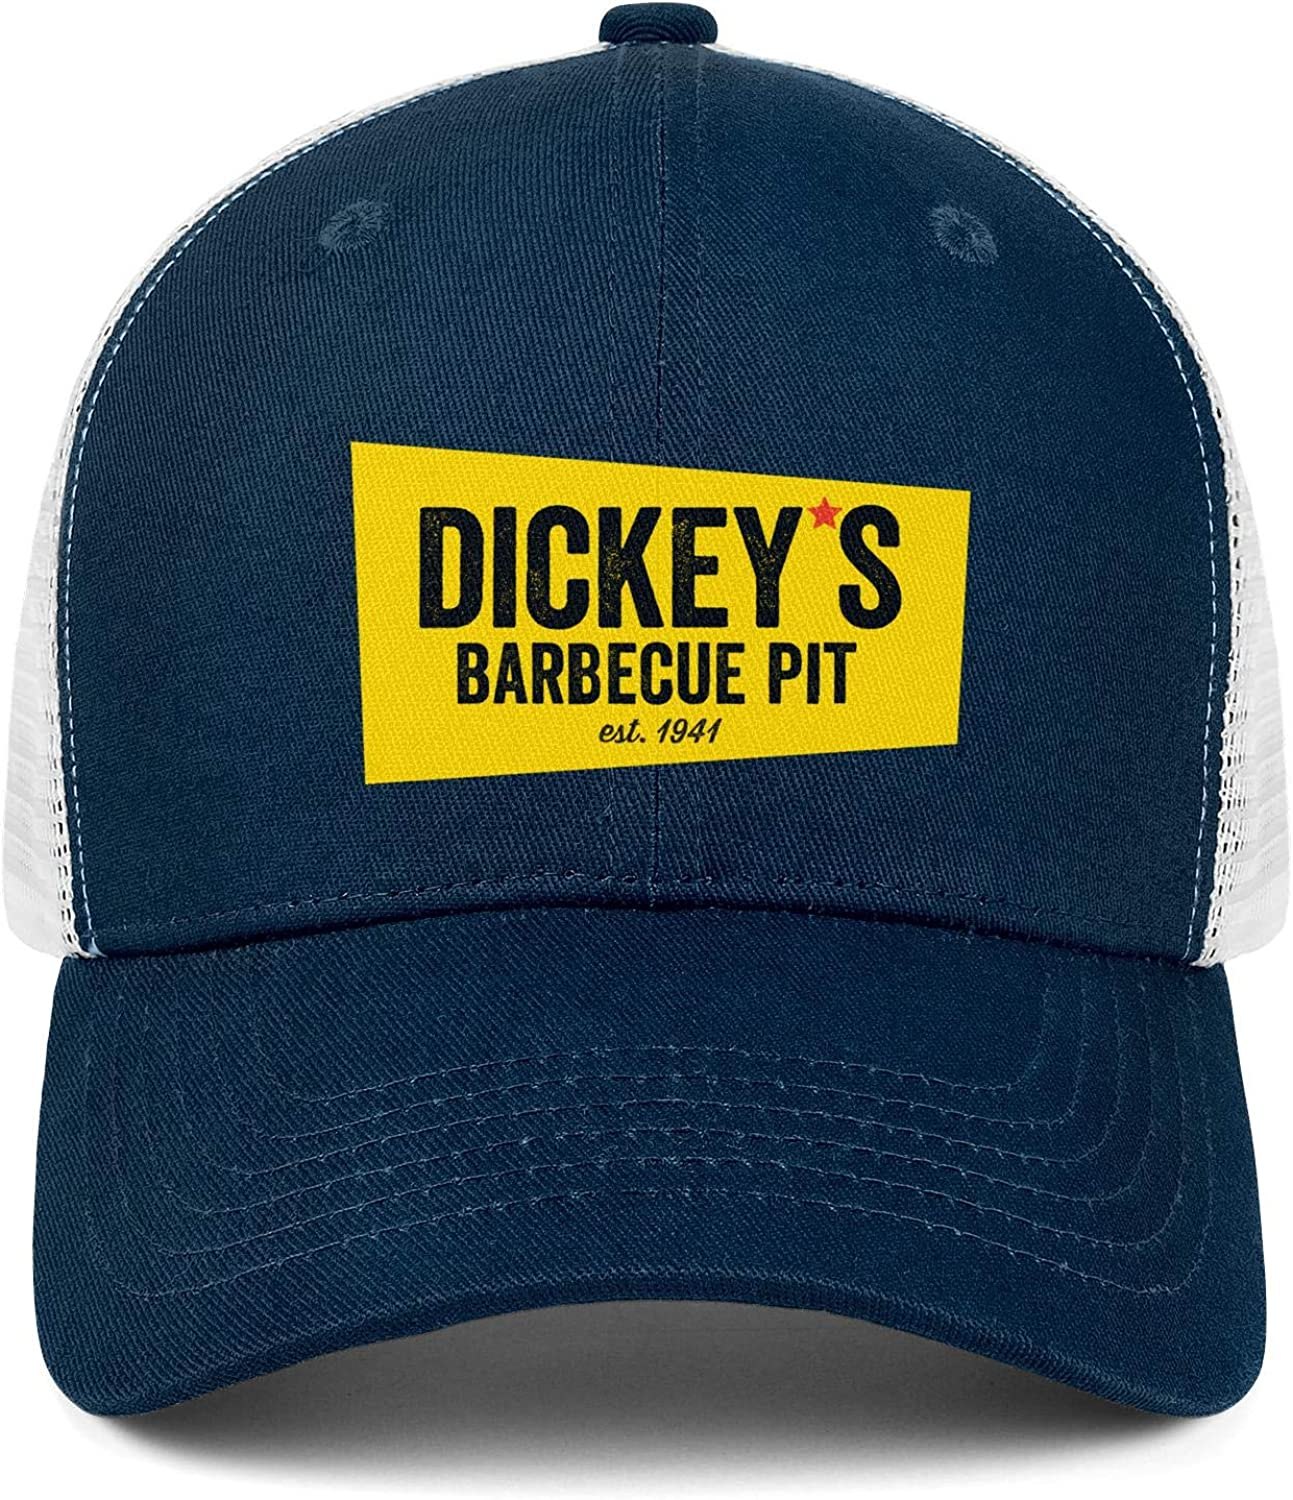 chenhou Unisex Dickeys Barbecue Pit Hat Adjustable Fitted Dad Baseball Cap Trucker Hat Cowboy Hat